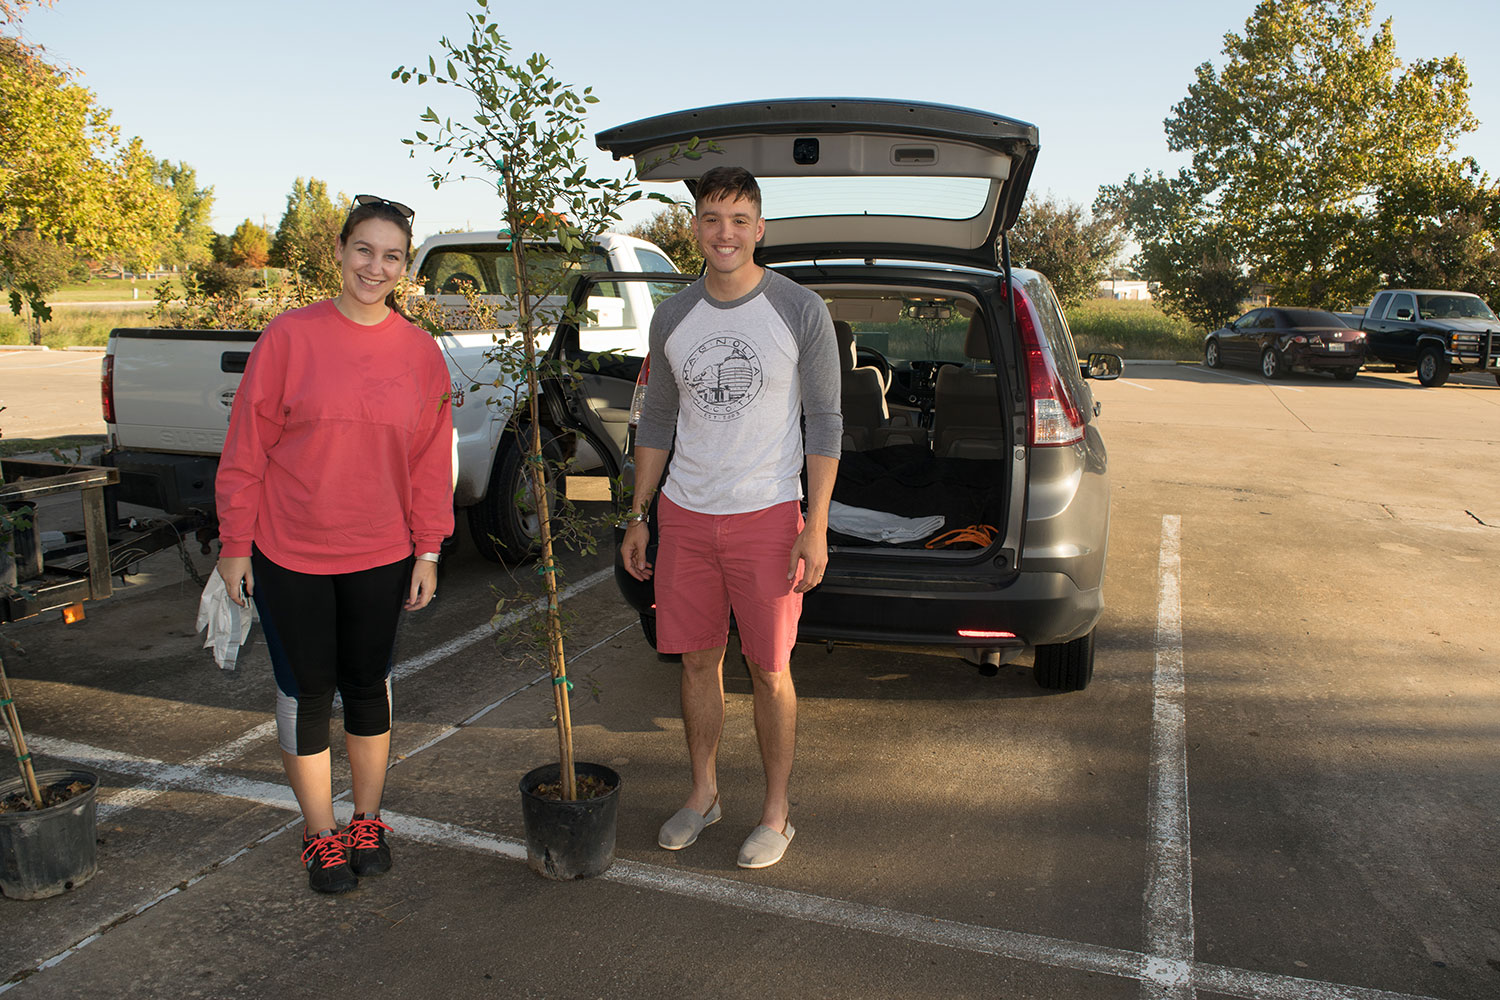 A man and a woman pose with a tree in front of their car that they received at the Arbor Day Tree Giveaway event in Georgetown, TX